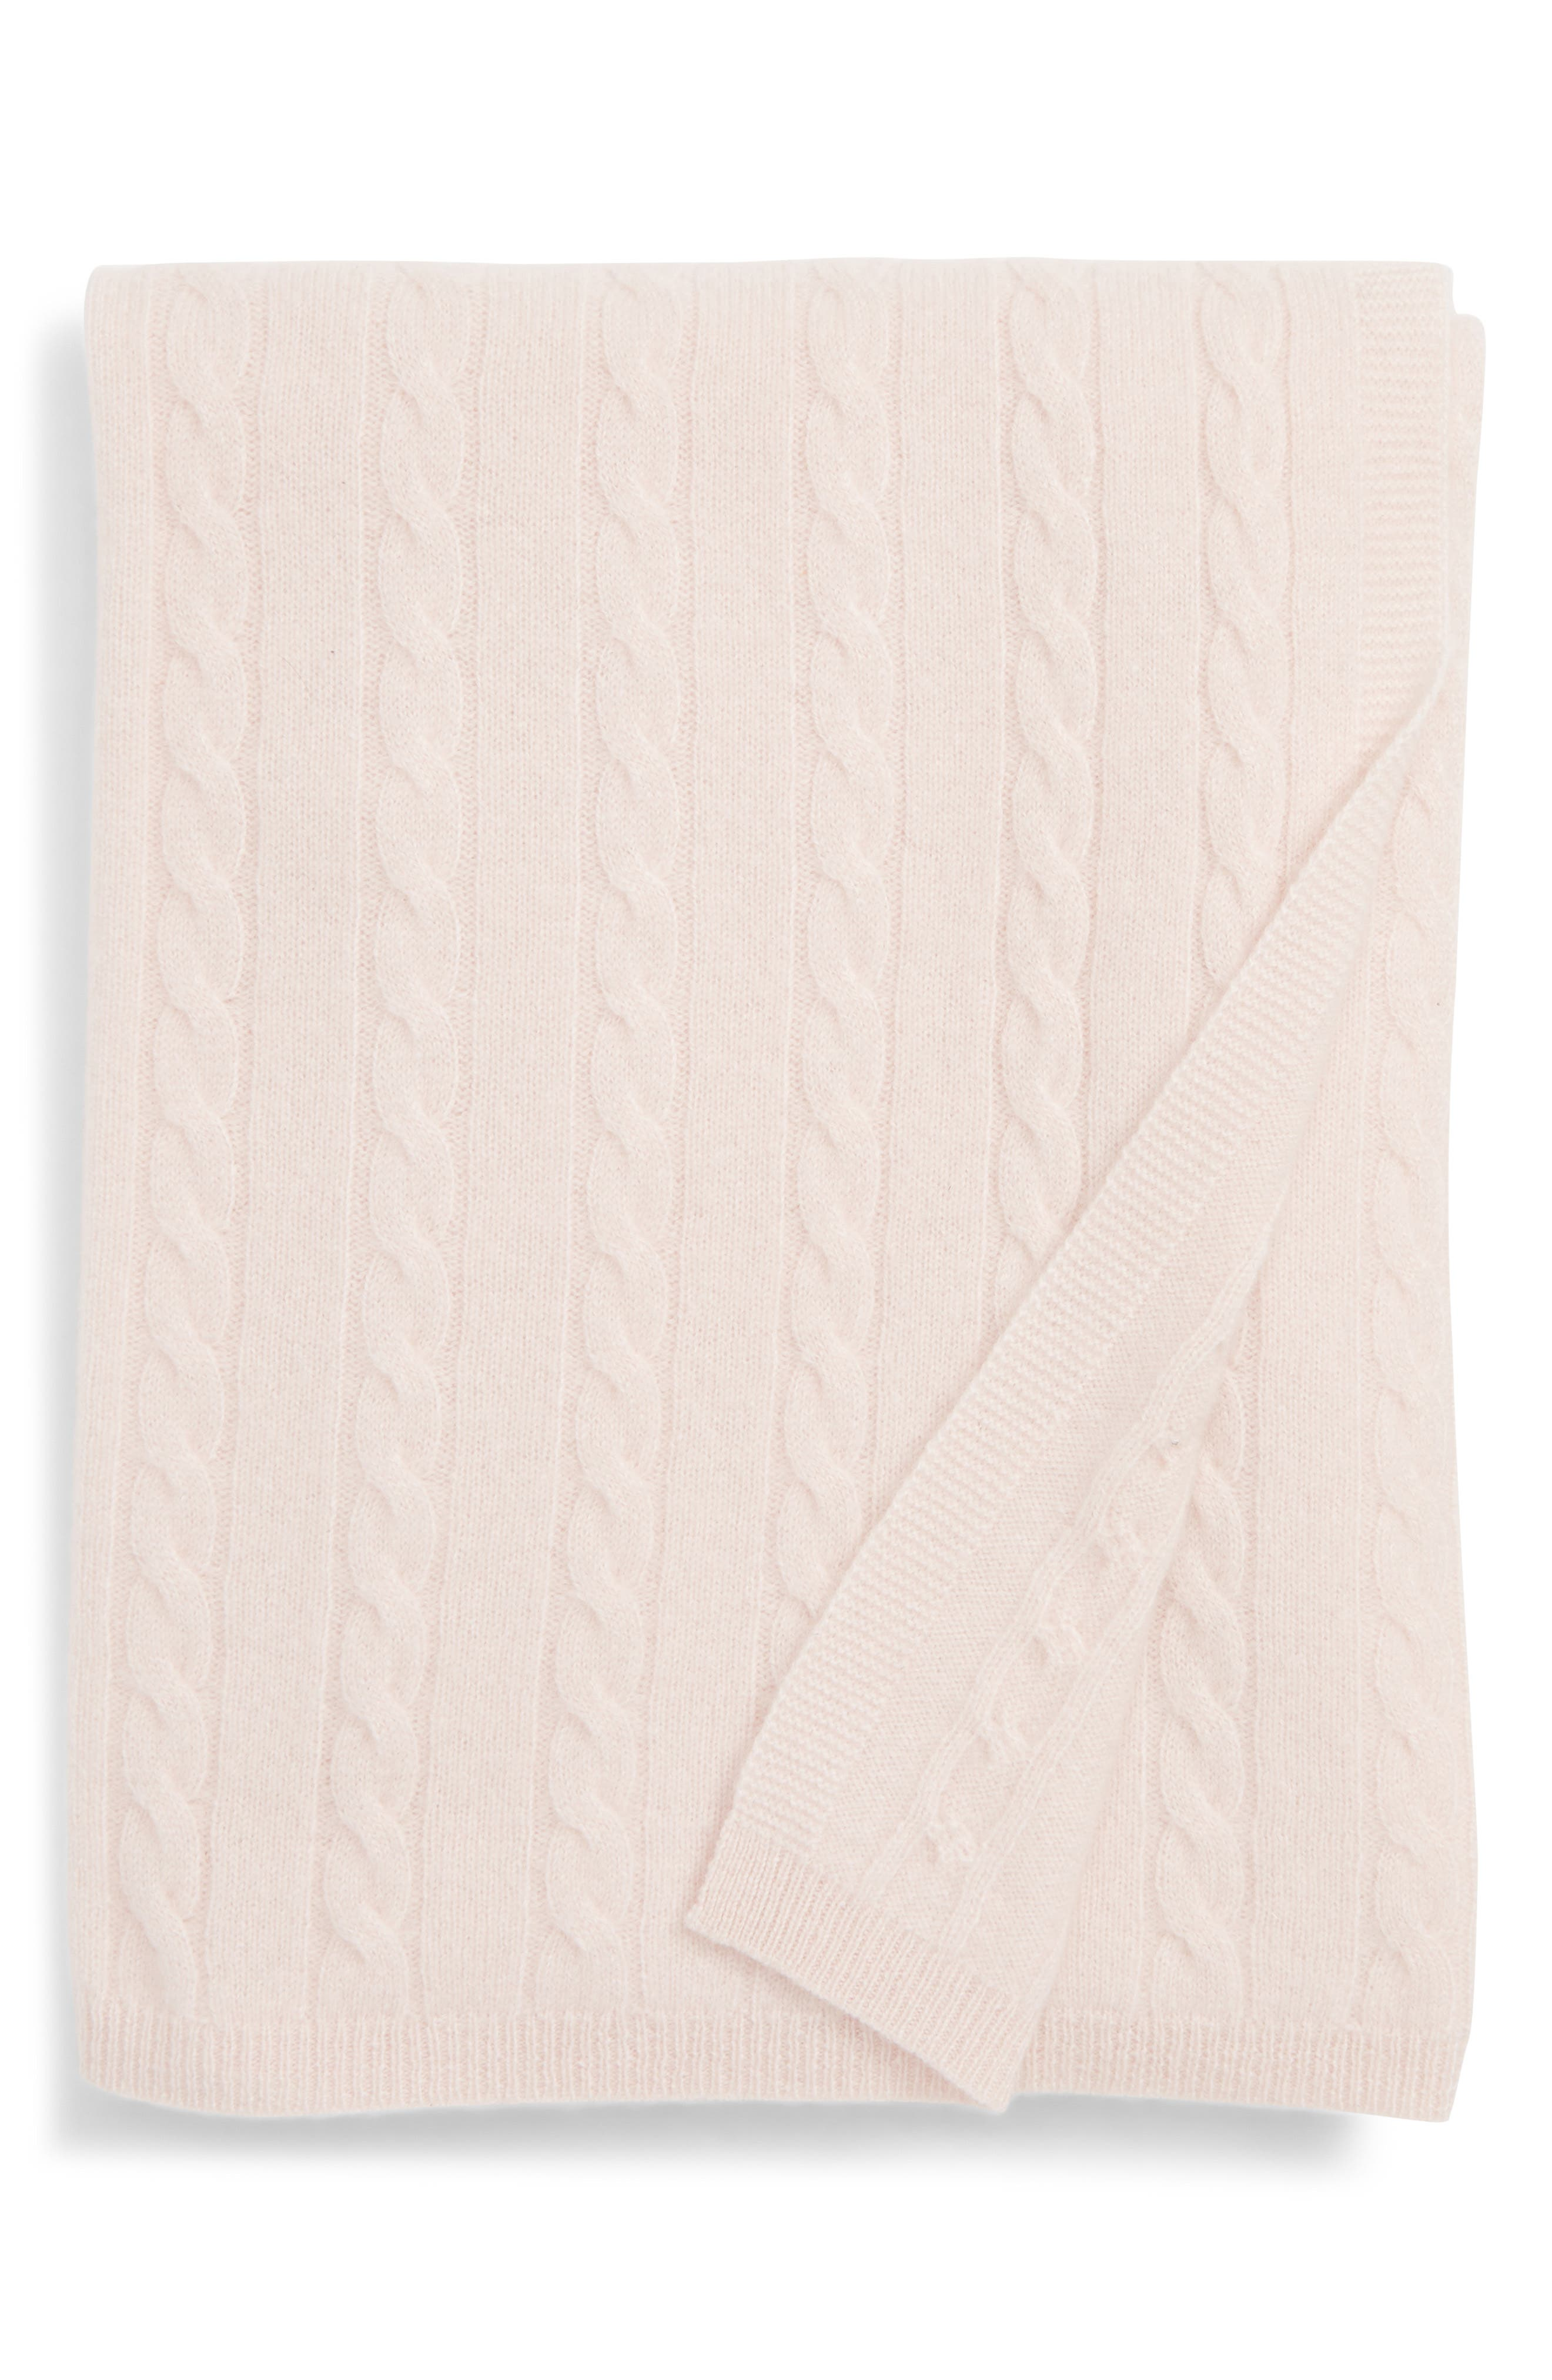 Cashmere Cable Knit Blanket,                             Main thumbnail 1, color,                             PINK DREAM